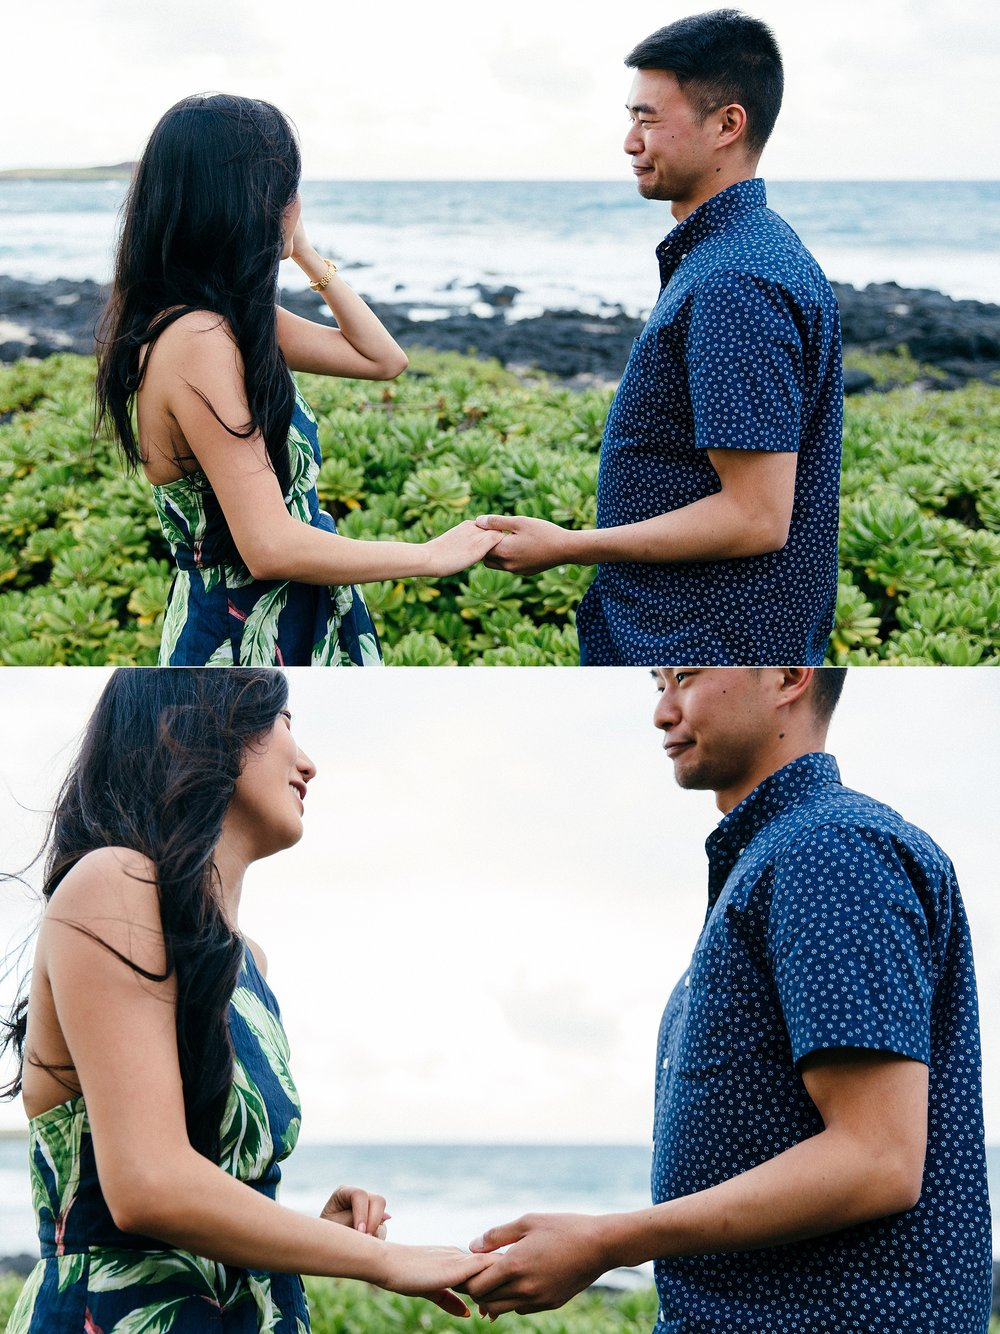 Hawaii Kai Proposal At Makapuu Lighthouse - Honolulu, Oahu Wedding Photographers